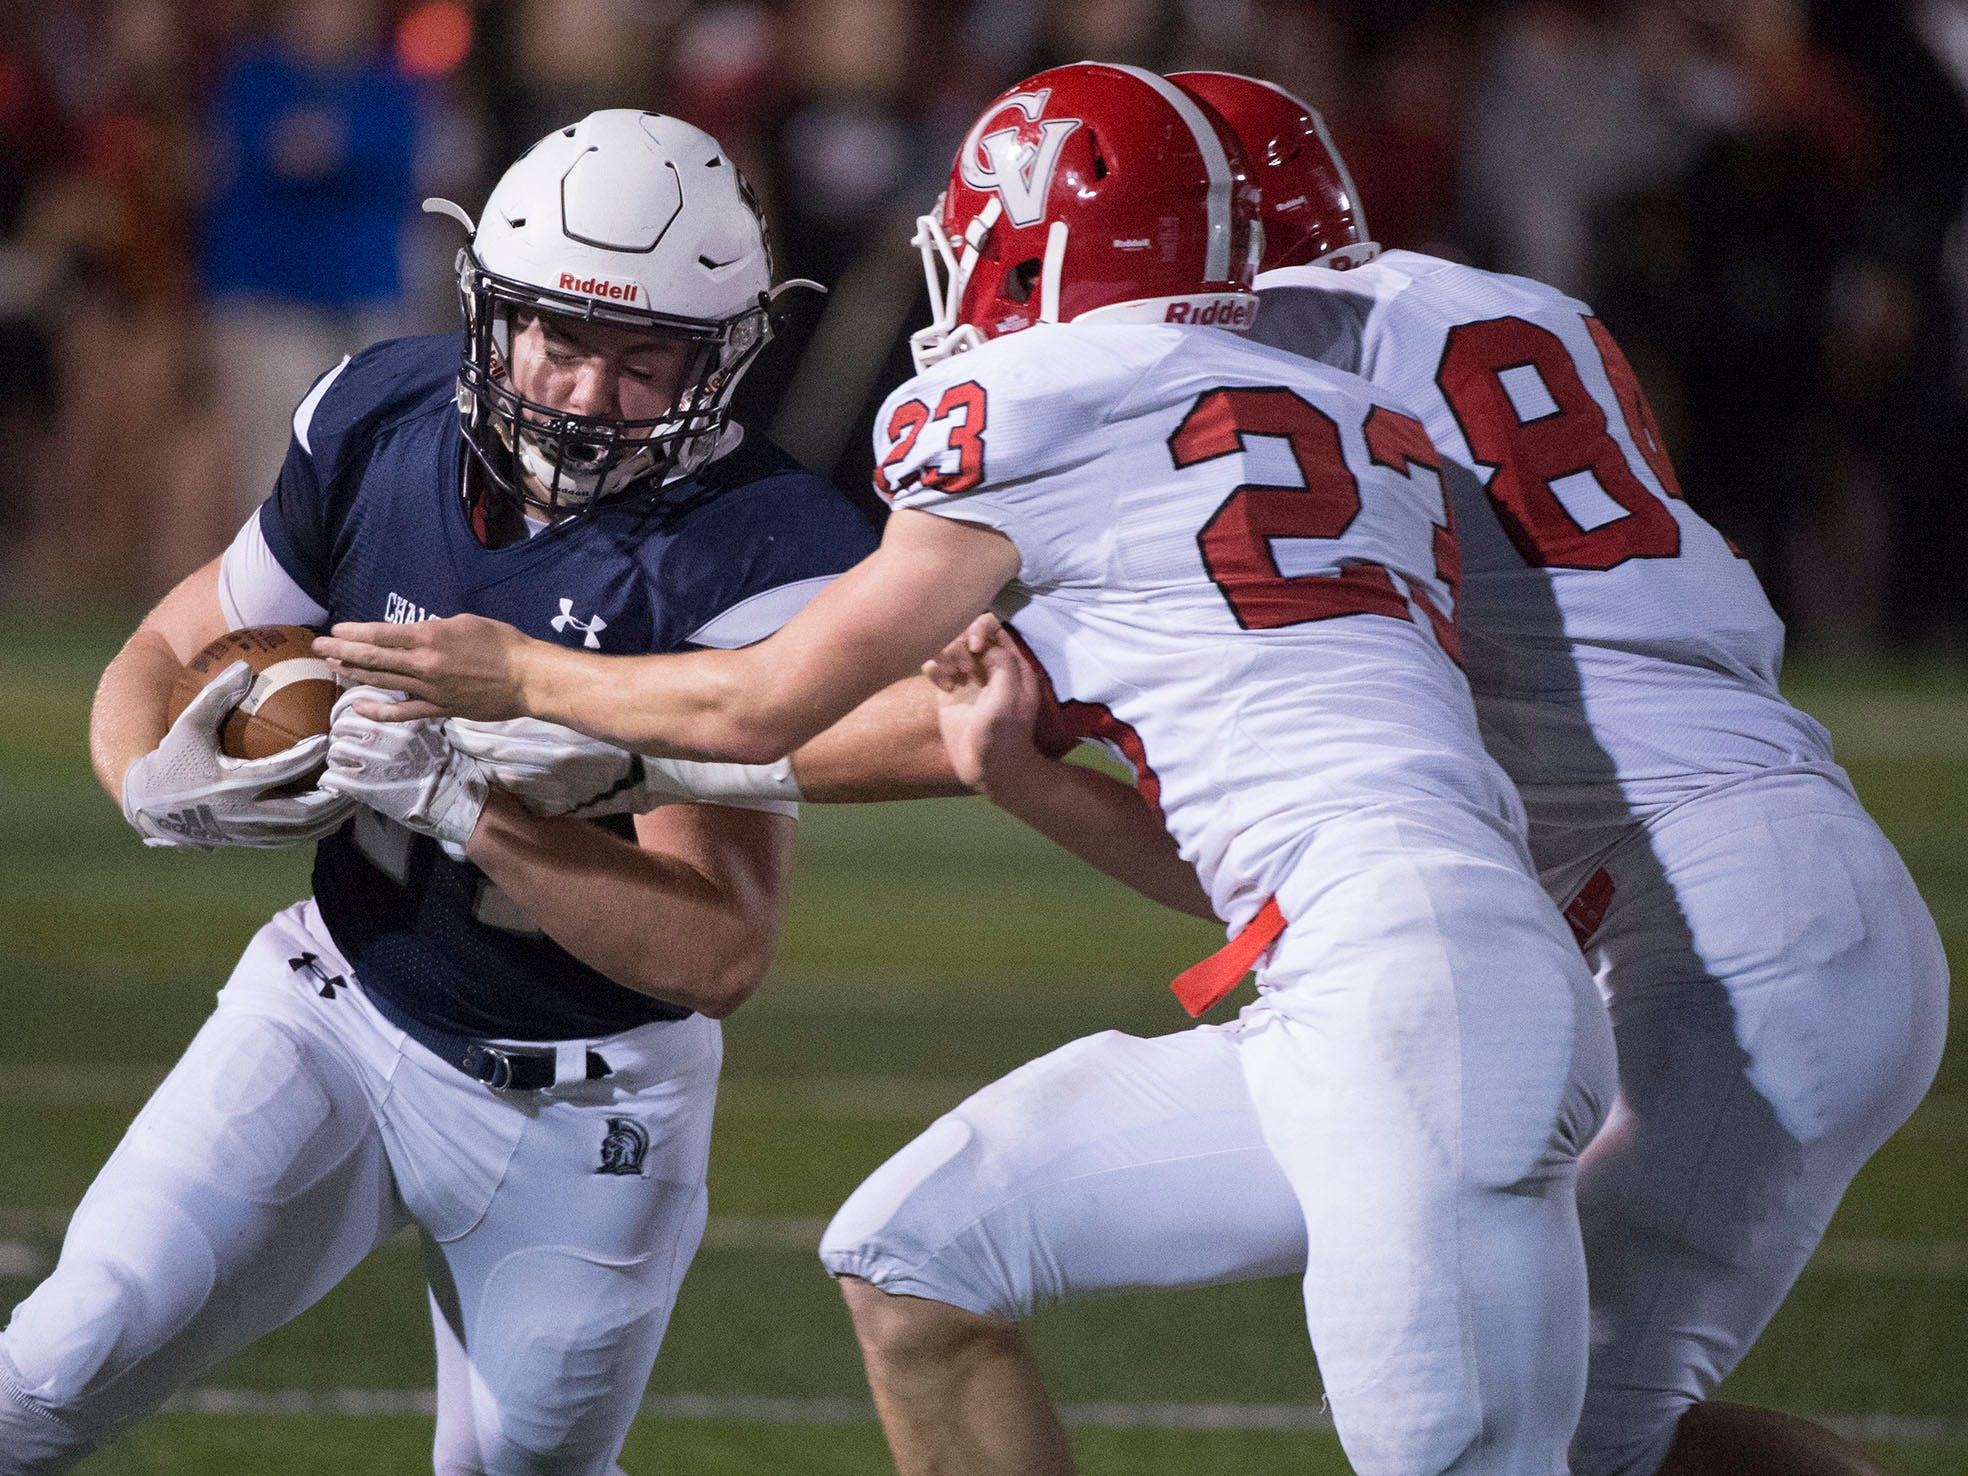 Andrew Shetter, left, of Chambersburg runs the ball as Maximos Dell'anno (23) and Stone Huffman defend. Chambersburg Trojans are 5-1 after a homecoming victory over Cumberland Valley 28-14 in PIAA football on Friday, Sept. 28, 2018.